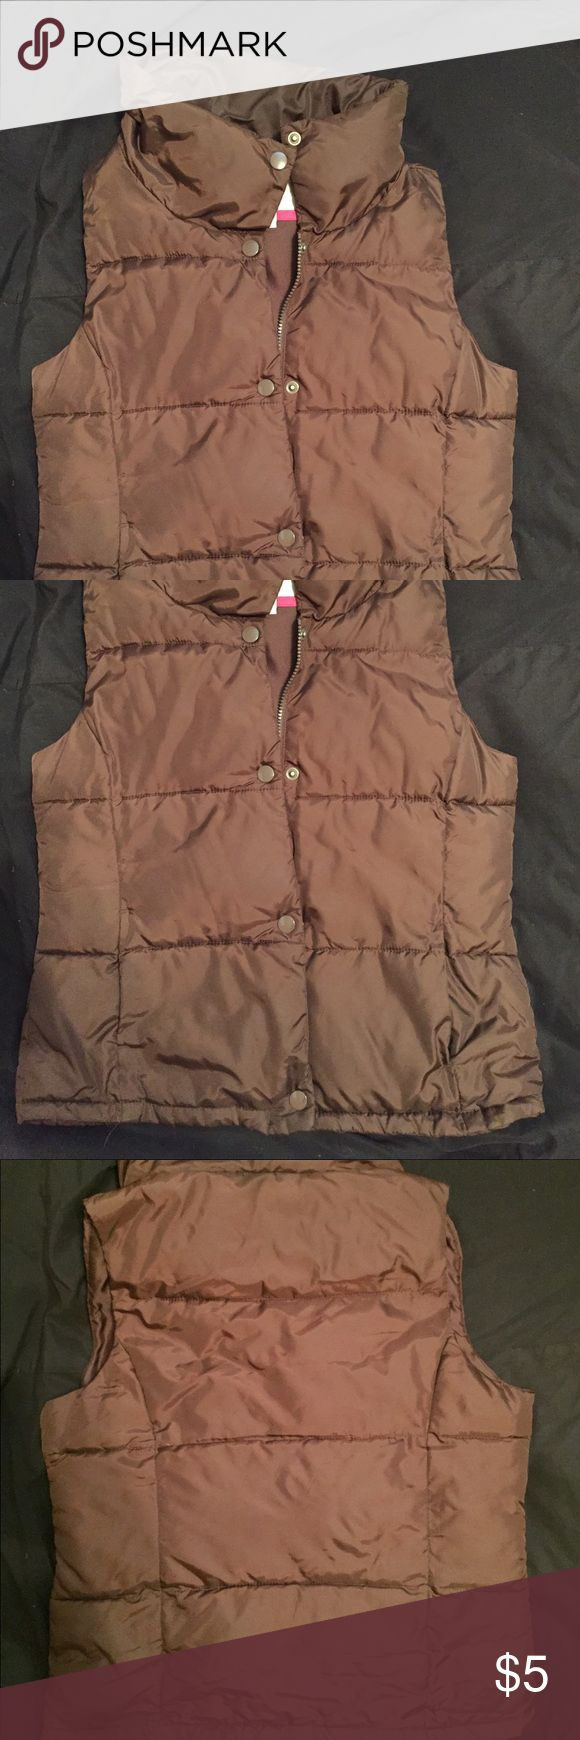 Brown Old Navy Vest Brown Old Navy Vest. Zippers and buttons in the front. Has pockets. Lined and very warm. In good condition. Old Navy Jackets & Coats Vests